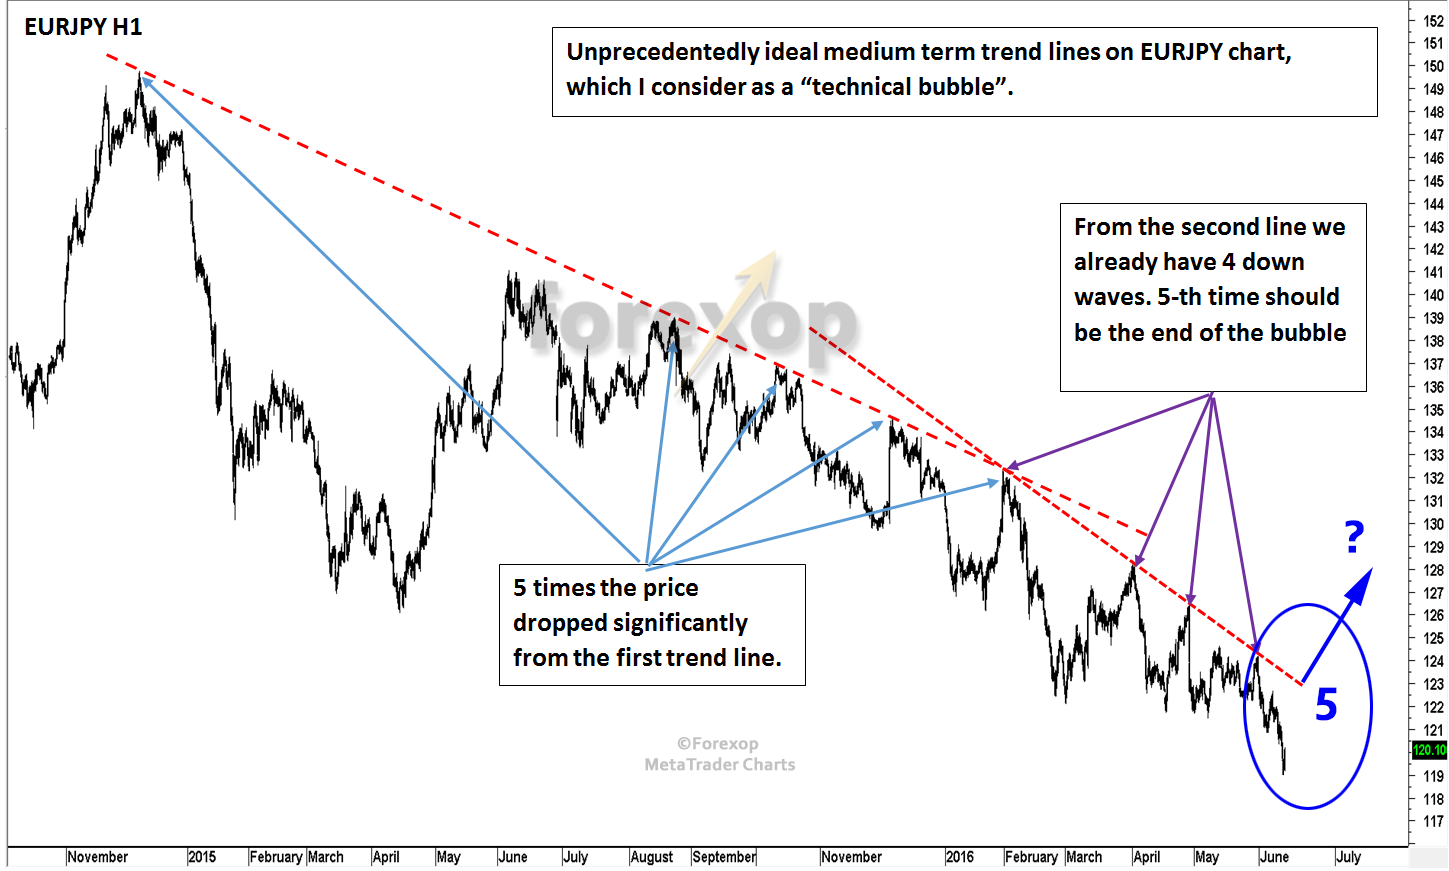 Figure 4: Unprecedentedly ideal medium term trend lines on EURJPY chart. Is this another technical bubble in the making?